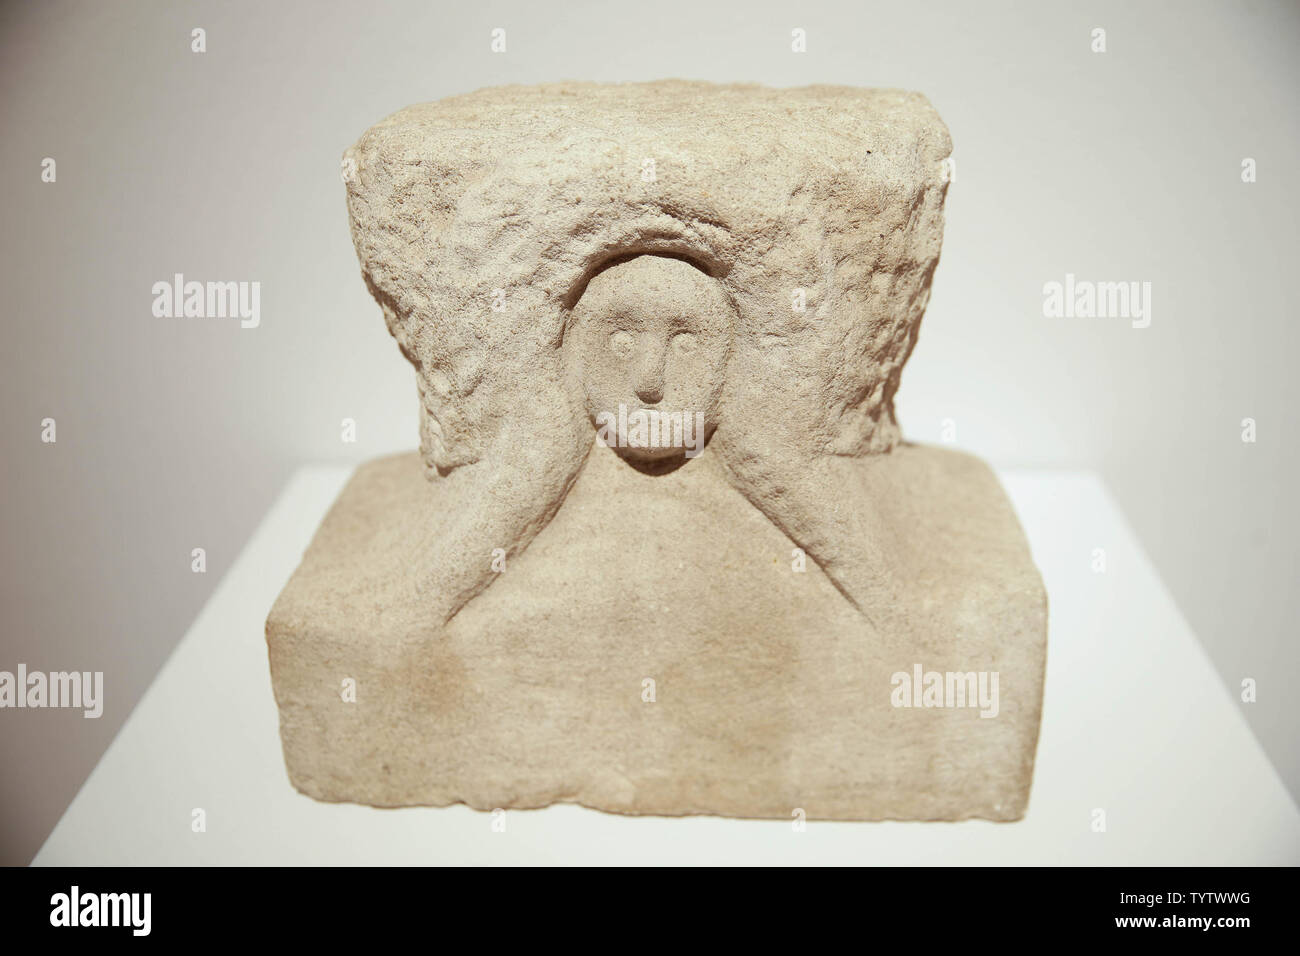 Head of a Woman by William Edmondson is on display at a press preview of an upcoming auction titled 'Outsider and Vernacular Art' at Christie's in New York City on January 12, 2019. The auction featuring Henry Darger's '148 At Jennie Richee During fury of storm are unsuccessfully attached (sic) by Glandelinians / 149 At Jennie Richee narrowly escape capture but Blengins come to rescue, double sided' , estd $250,000 - $500,000 and Bill Traylor's 'Goat, Camel, Lion and Figures', estd $75,000 - $100,000 takes place at Christie's on January 18th.     Photo by John Angelillo/UPI - Stock Image